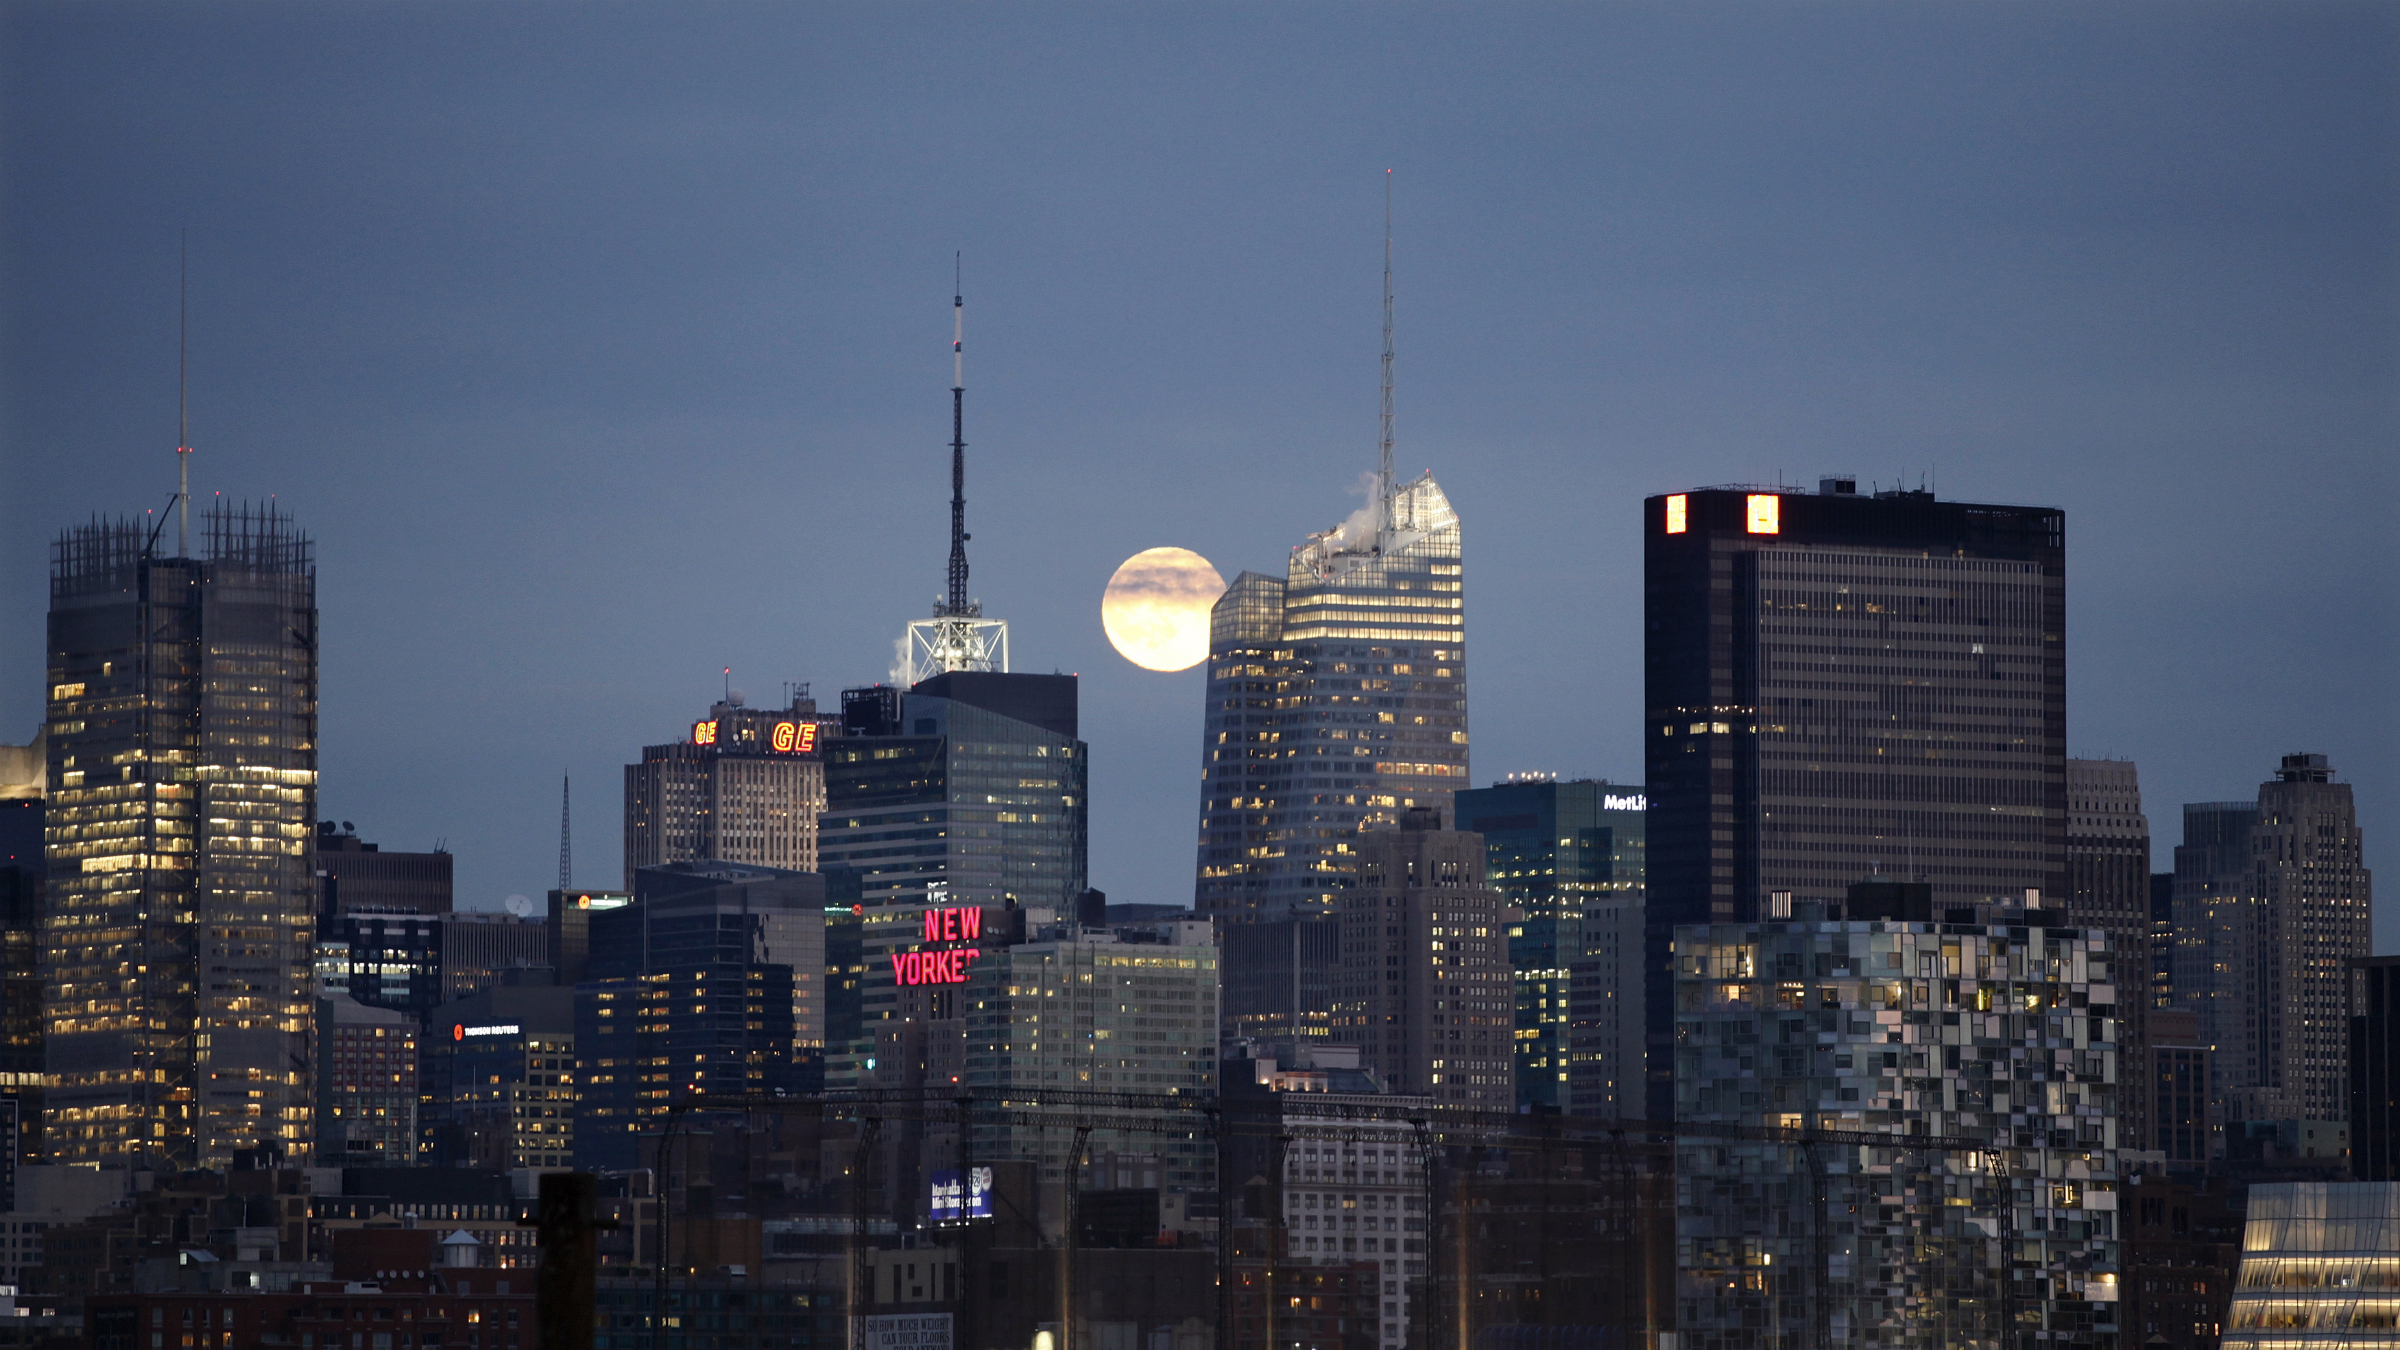 A full moon rises behind the skyline of midtown Manhattan in New York, November 21, 2010. The New York Times building sits at left and the new Bank of America tower is in the center, in front of the moon. REUTERS/Gary Hershorn